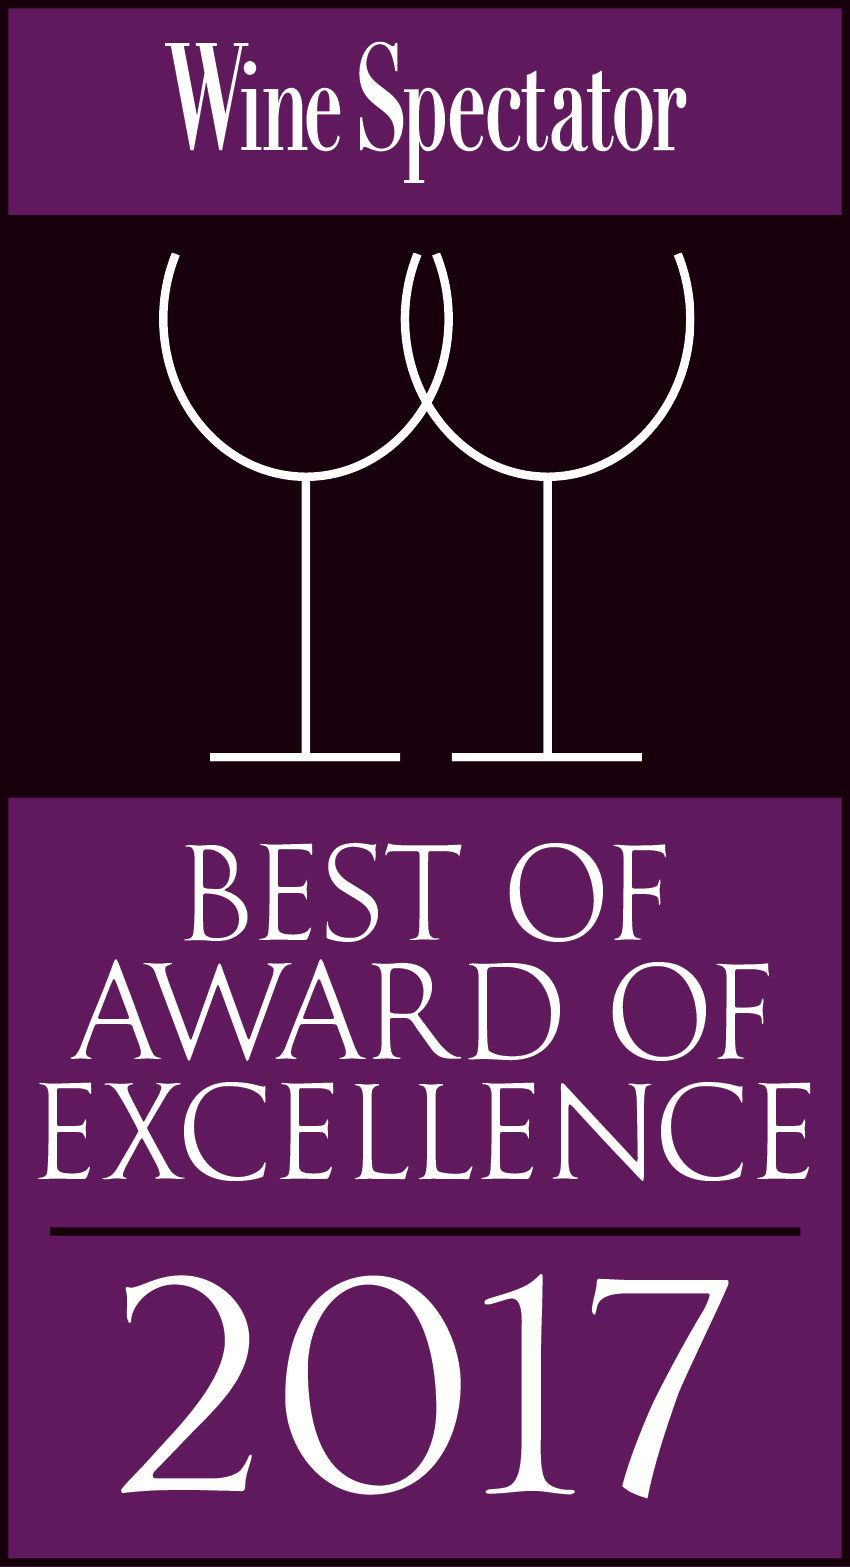 Wine Spectator Best of Award of Excellence color